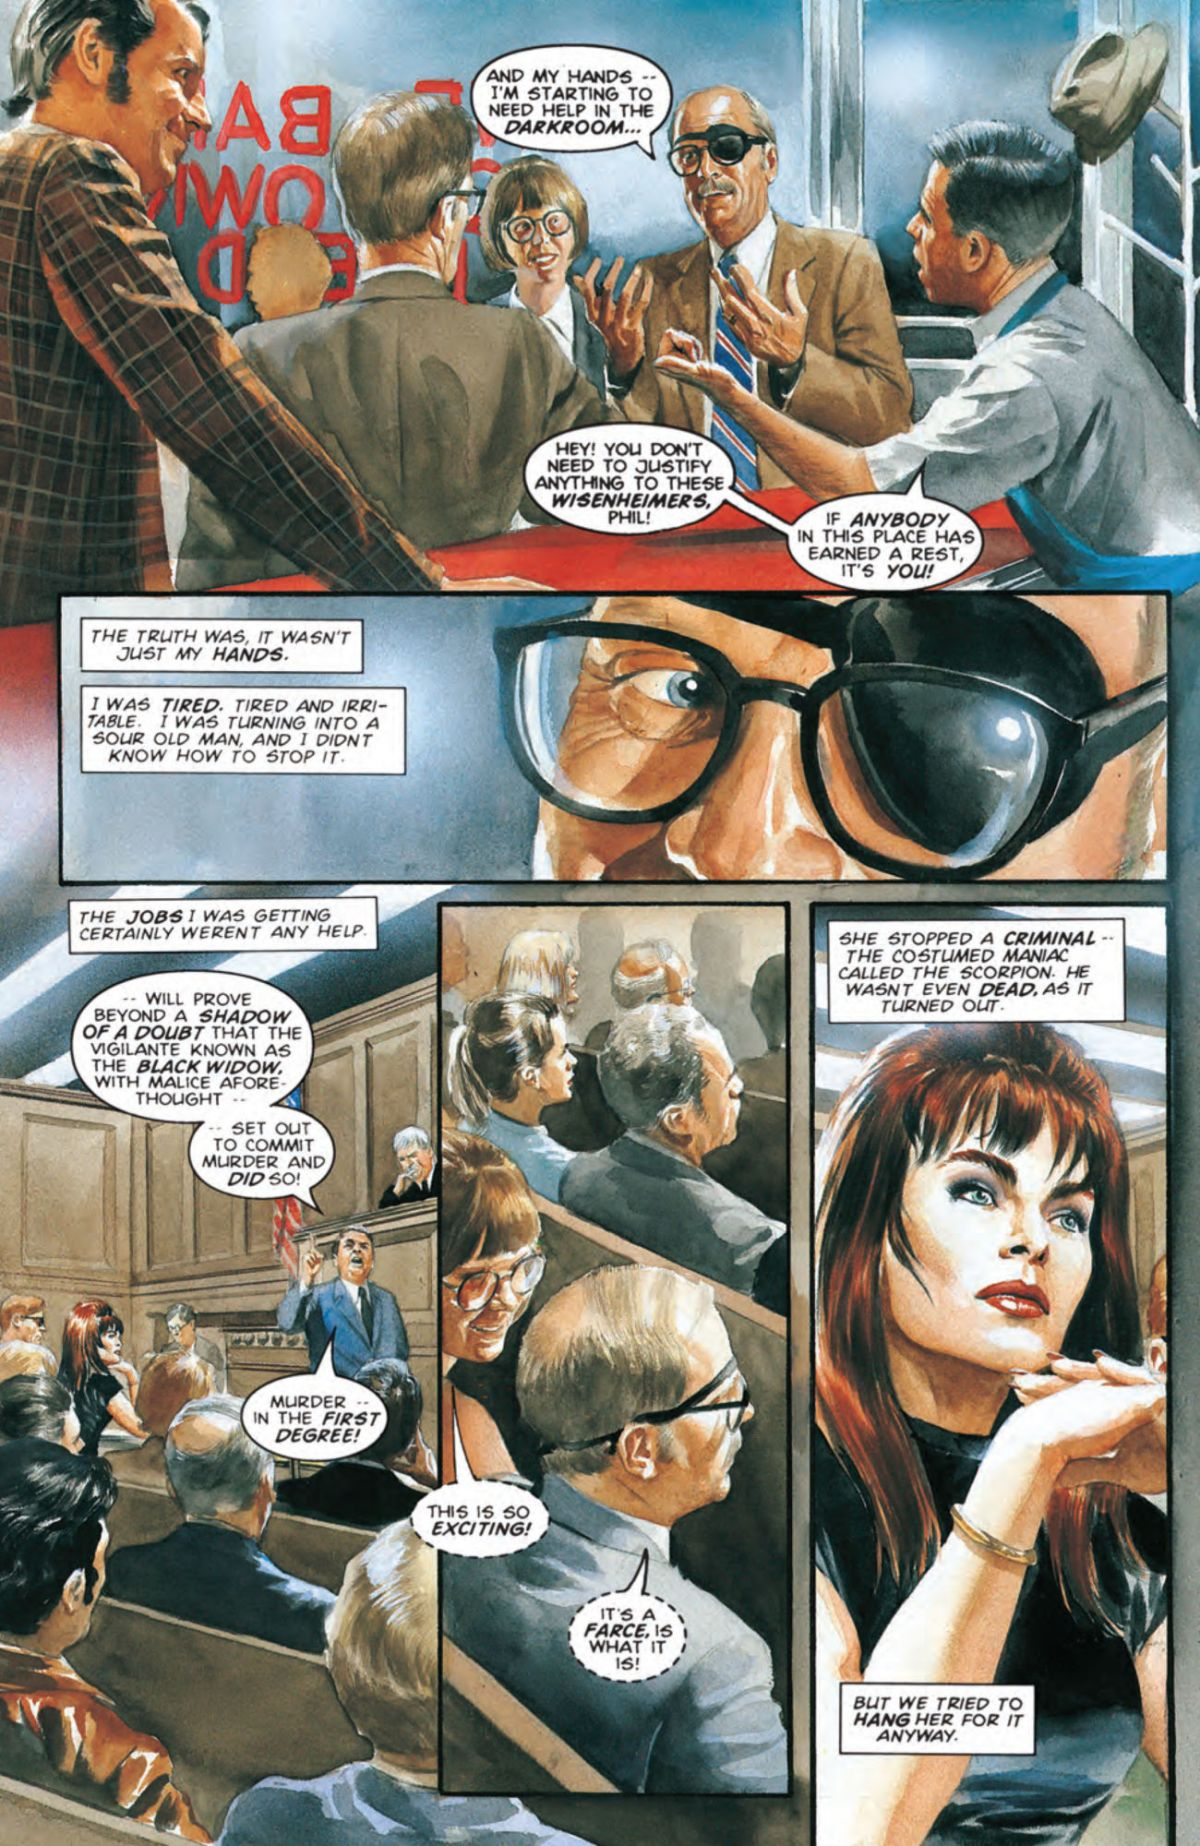 Phil Sheldon watching the case of New York vs Black Widow in Marvels #4.